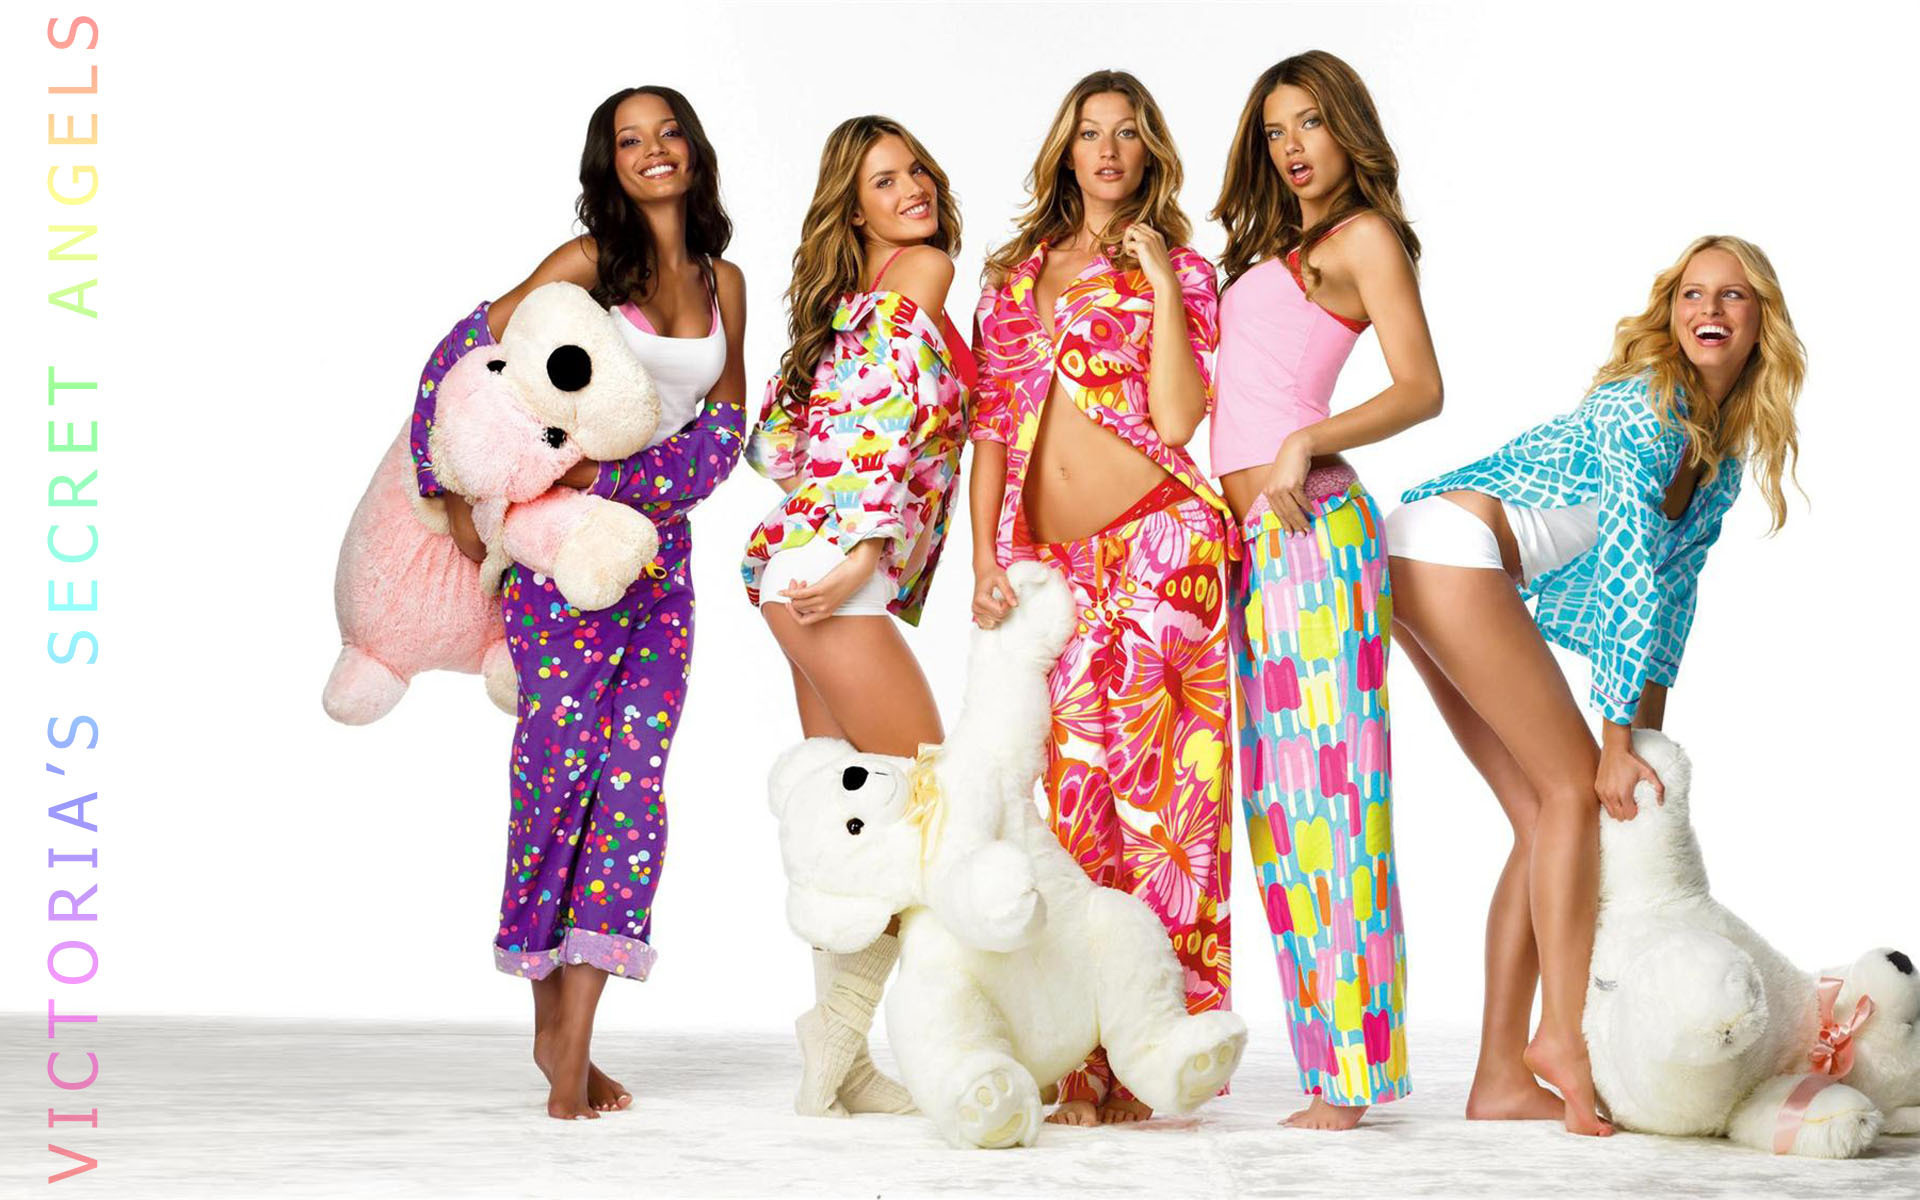 Angels Victoria Secret Clube Dos Homens Pictures to pin on ...: http://pinstake.com/angels-victoria-secret-clube-dos-homens